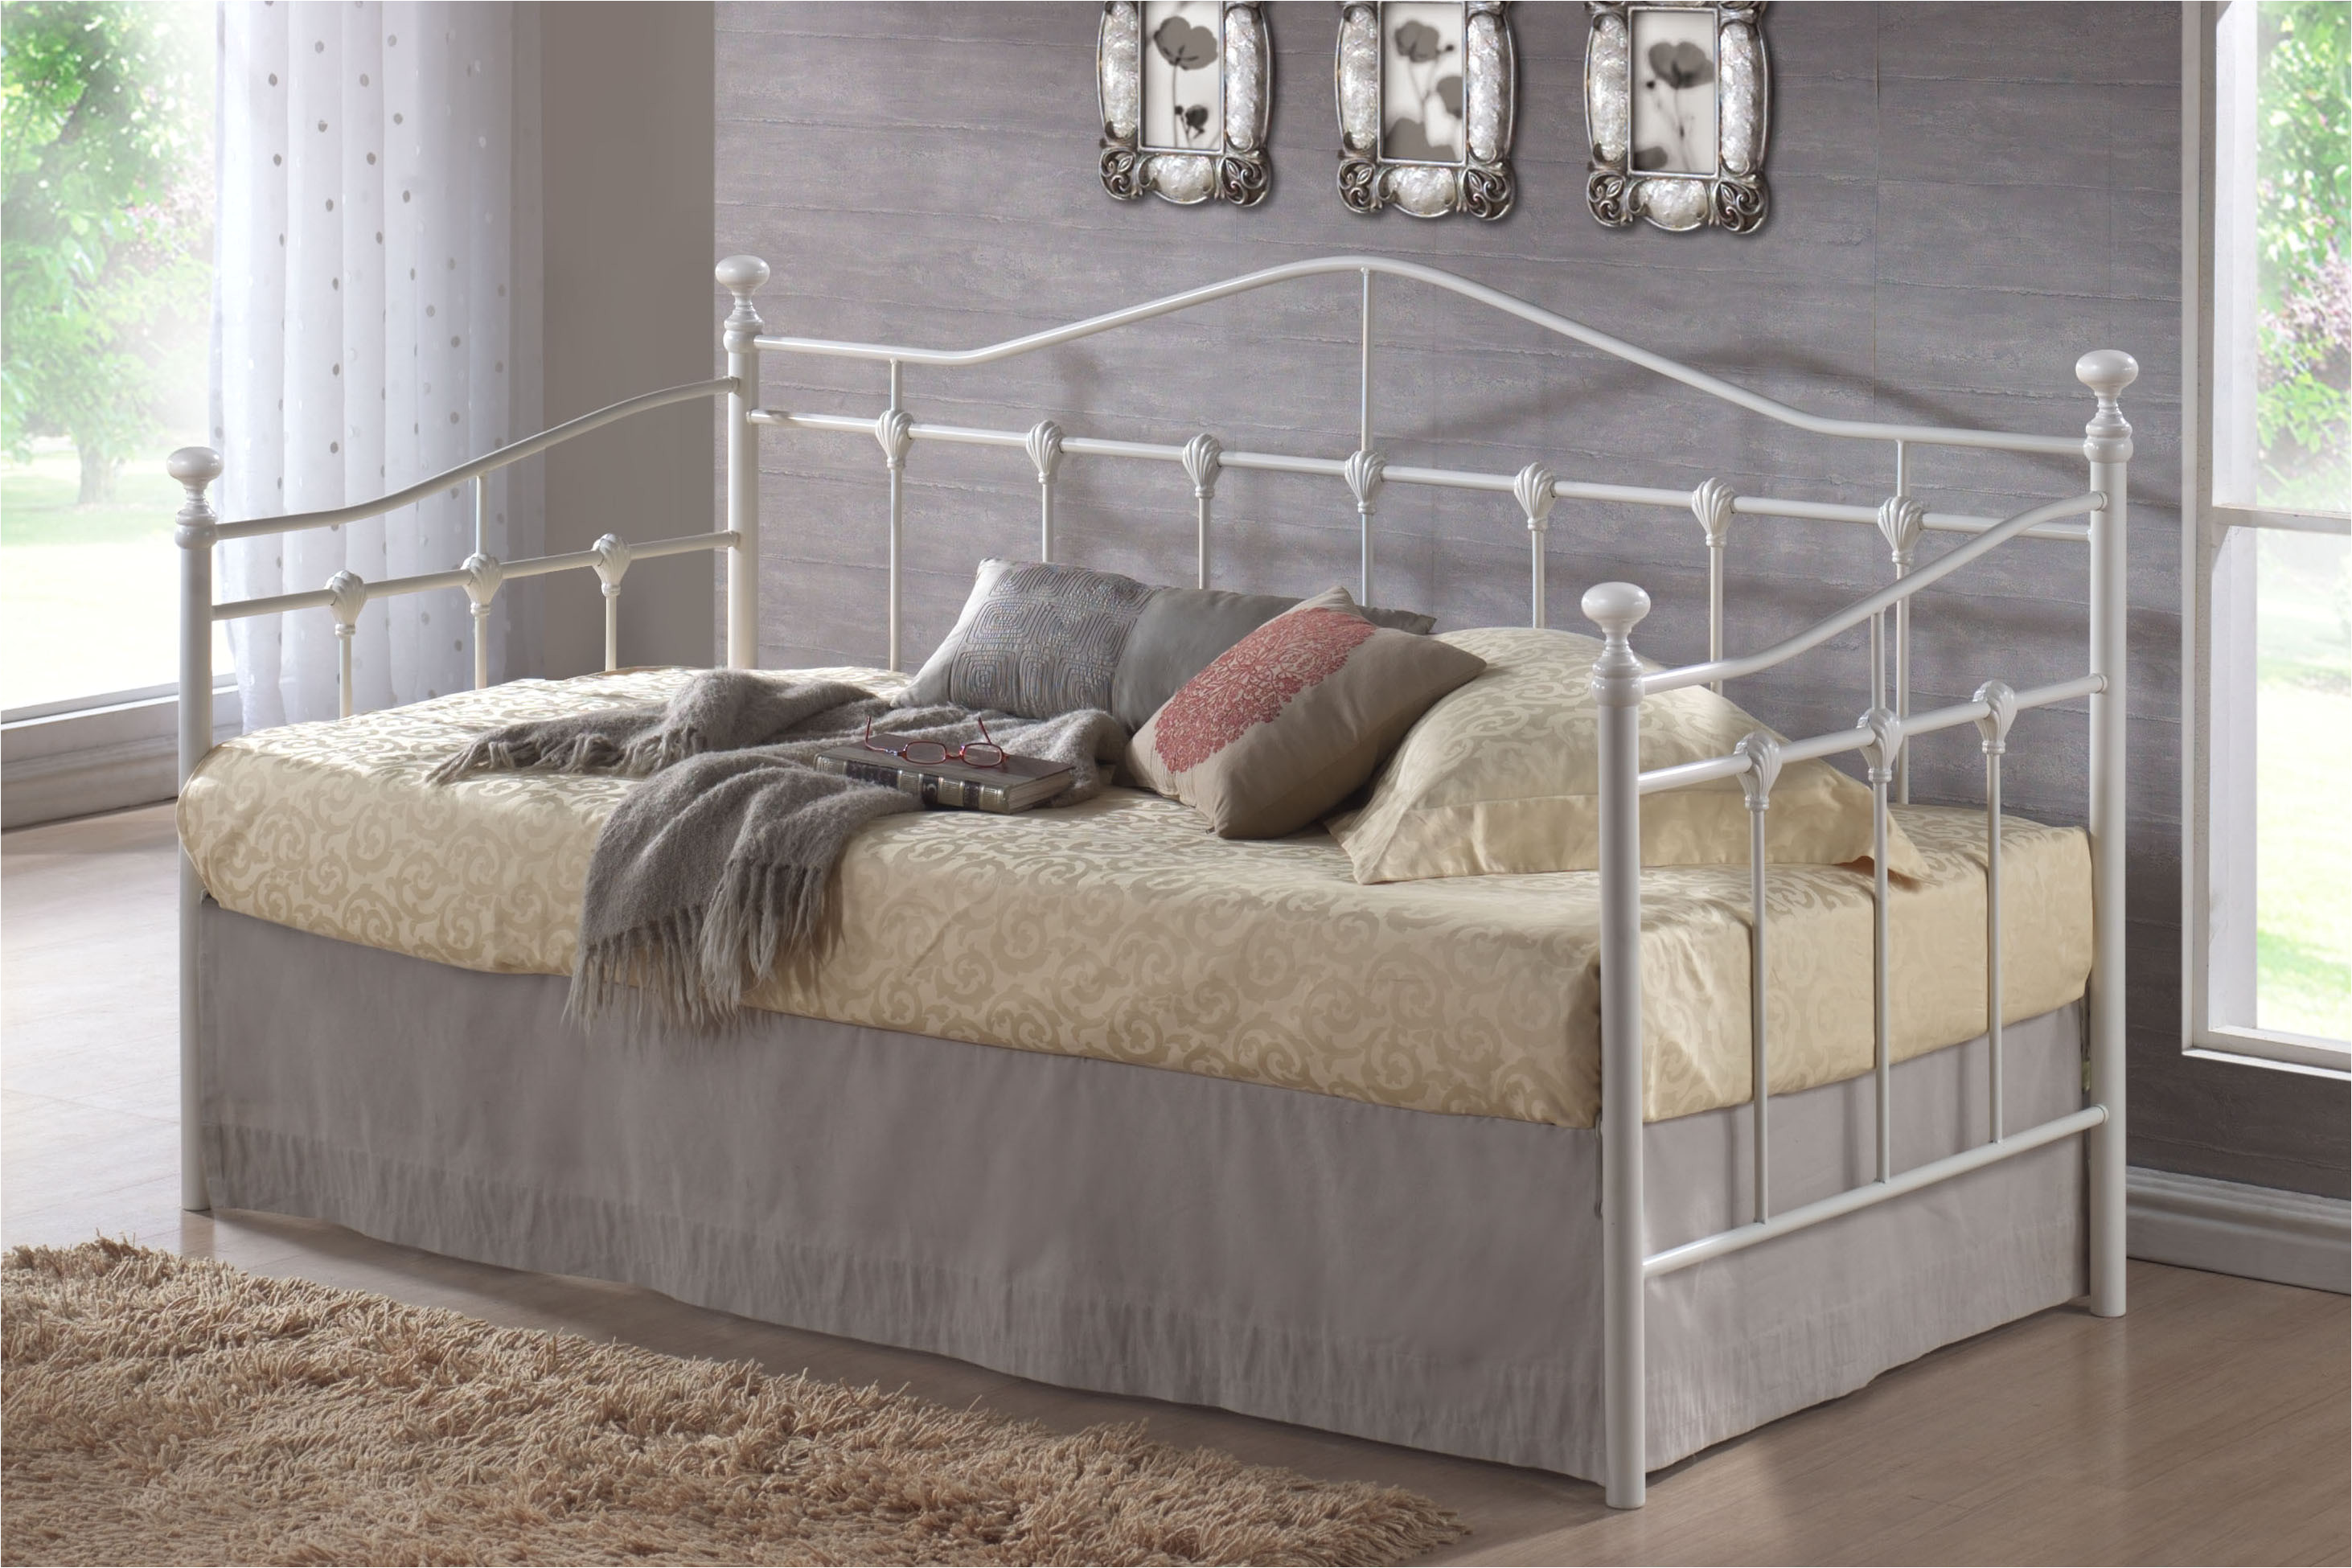 20 different types of beds